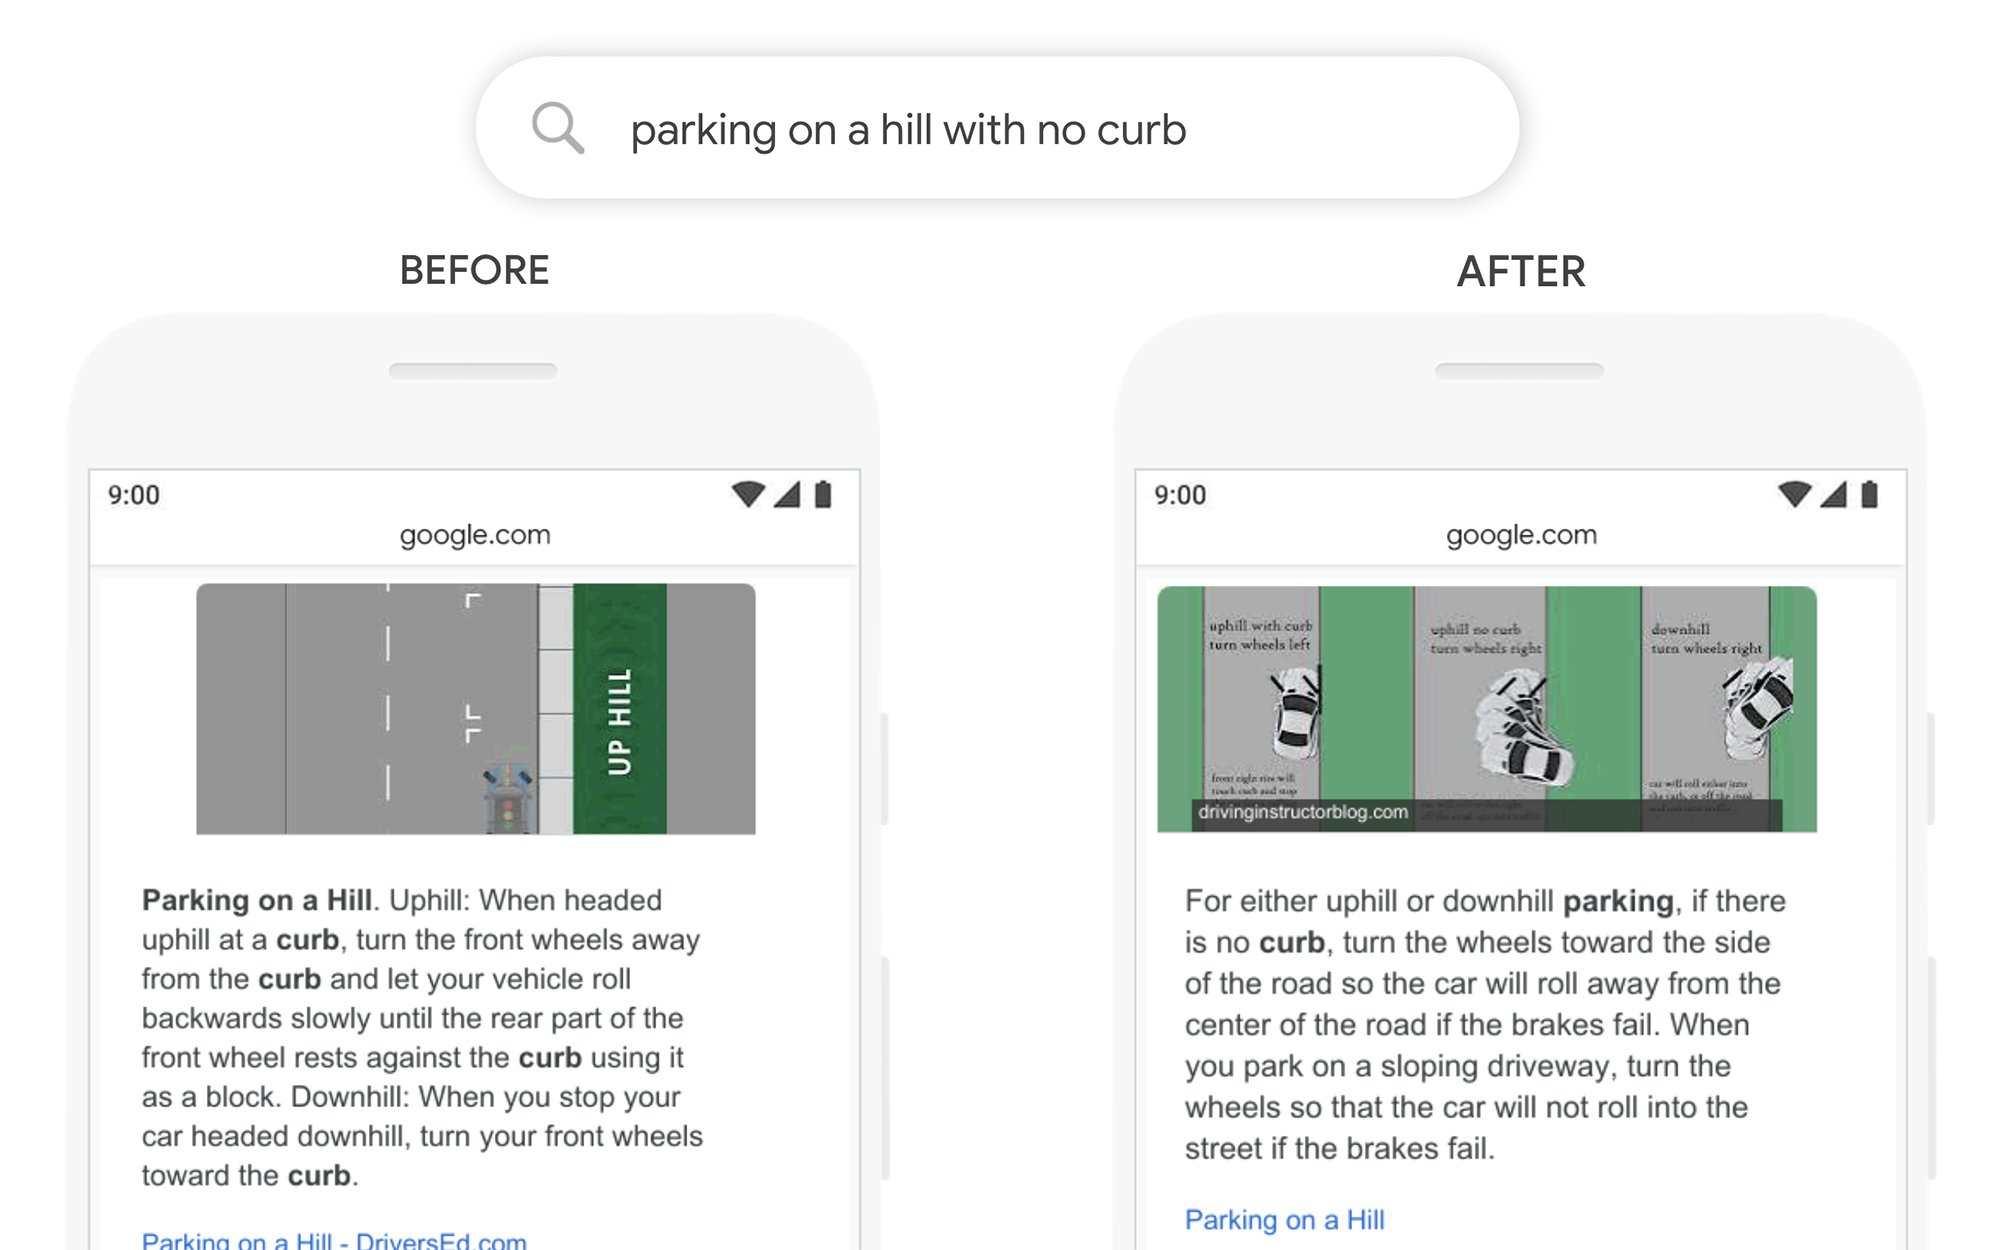 Google Bert update - Parking on a hill with no curb